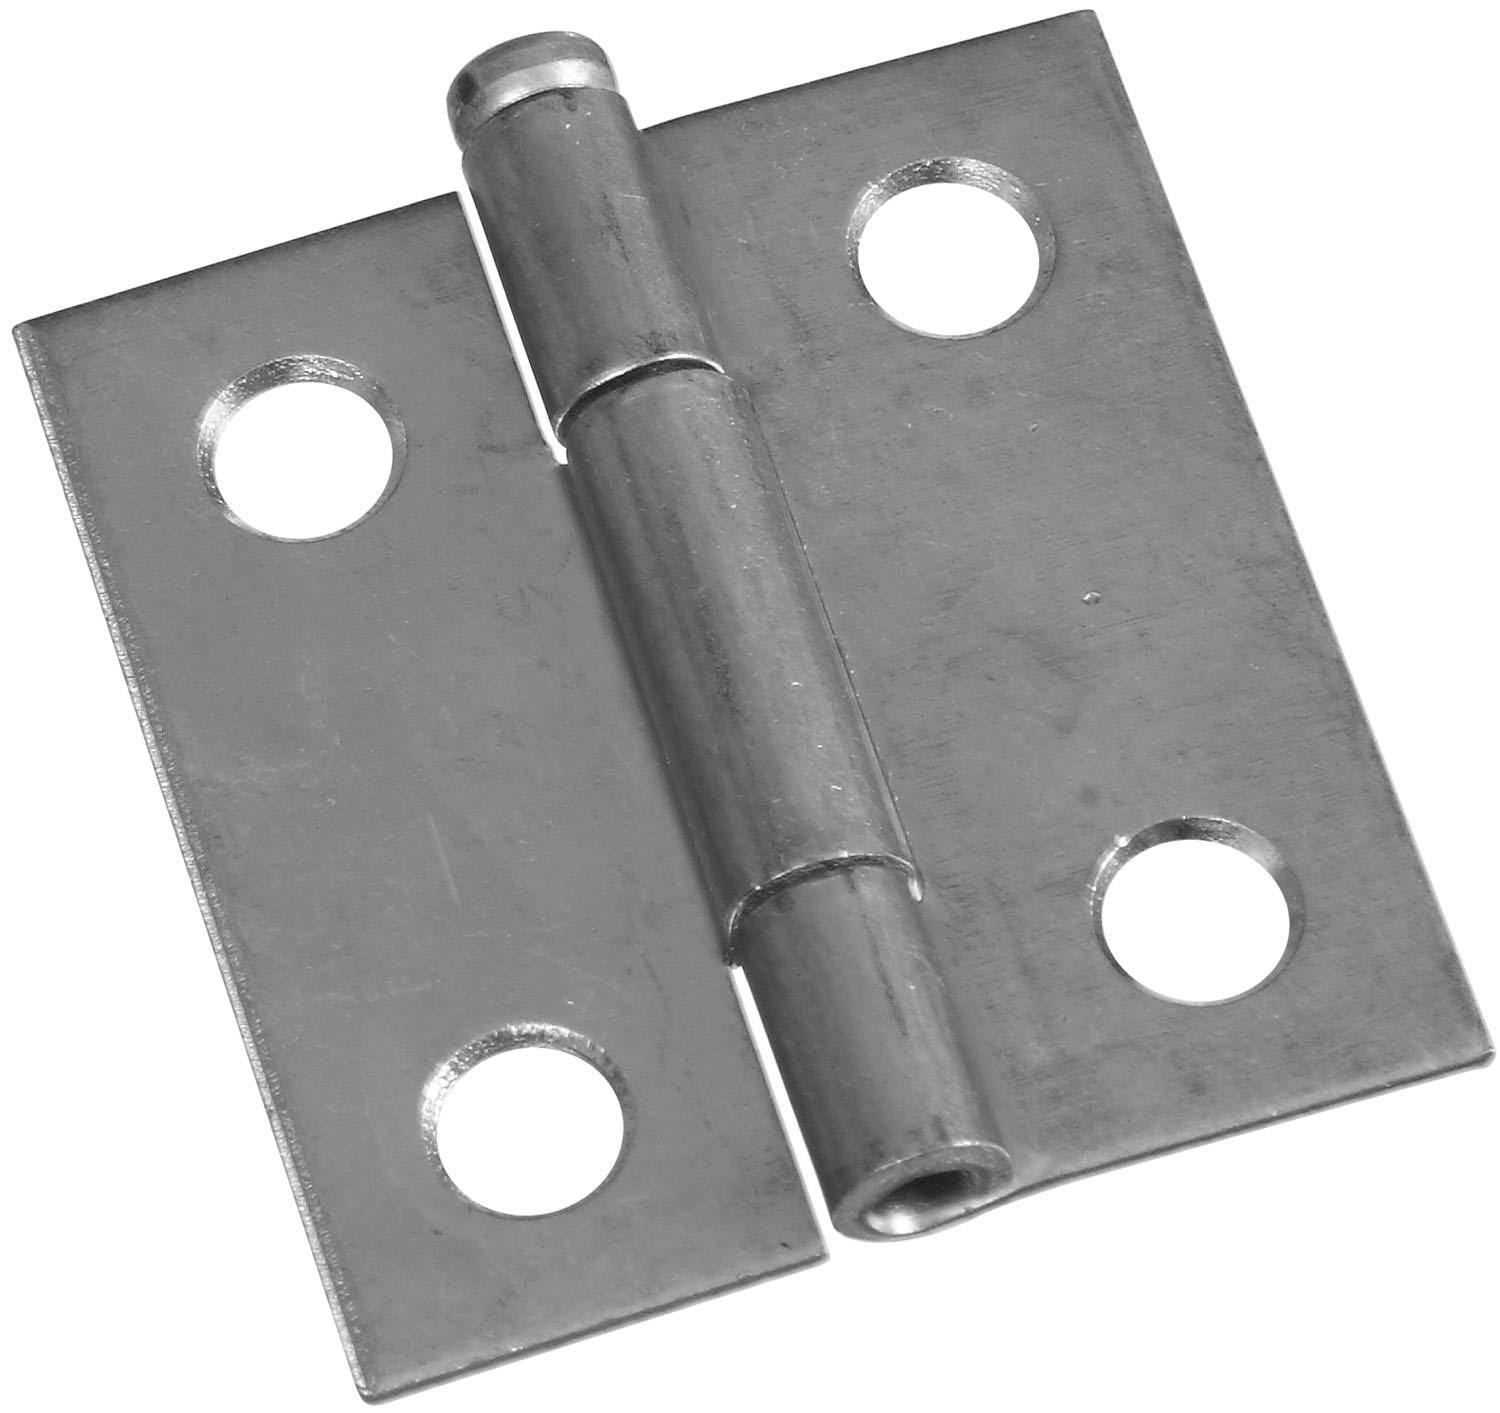 Stanley N141-739 Zinc Light Narrow Hinge - 3.8cm X 3.7cm